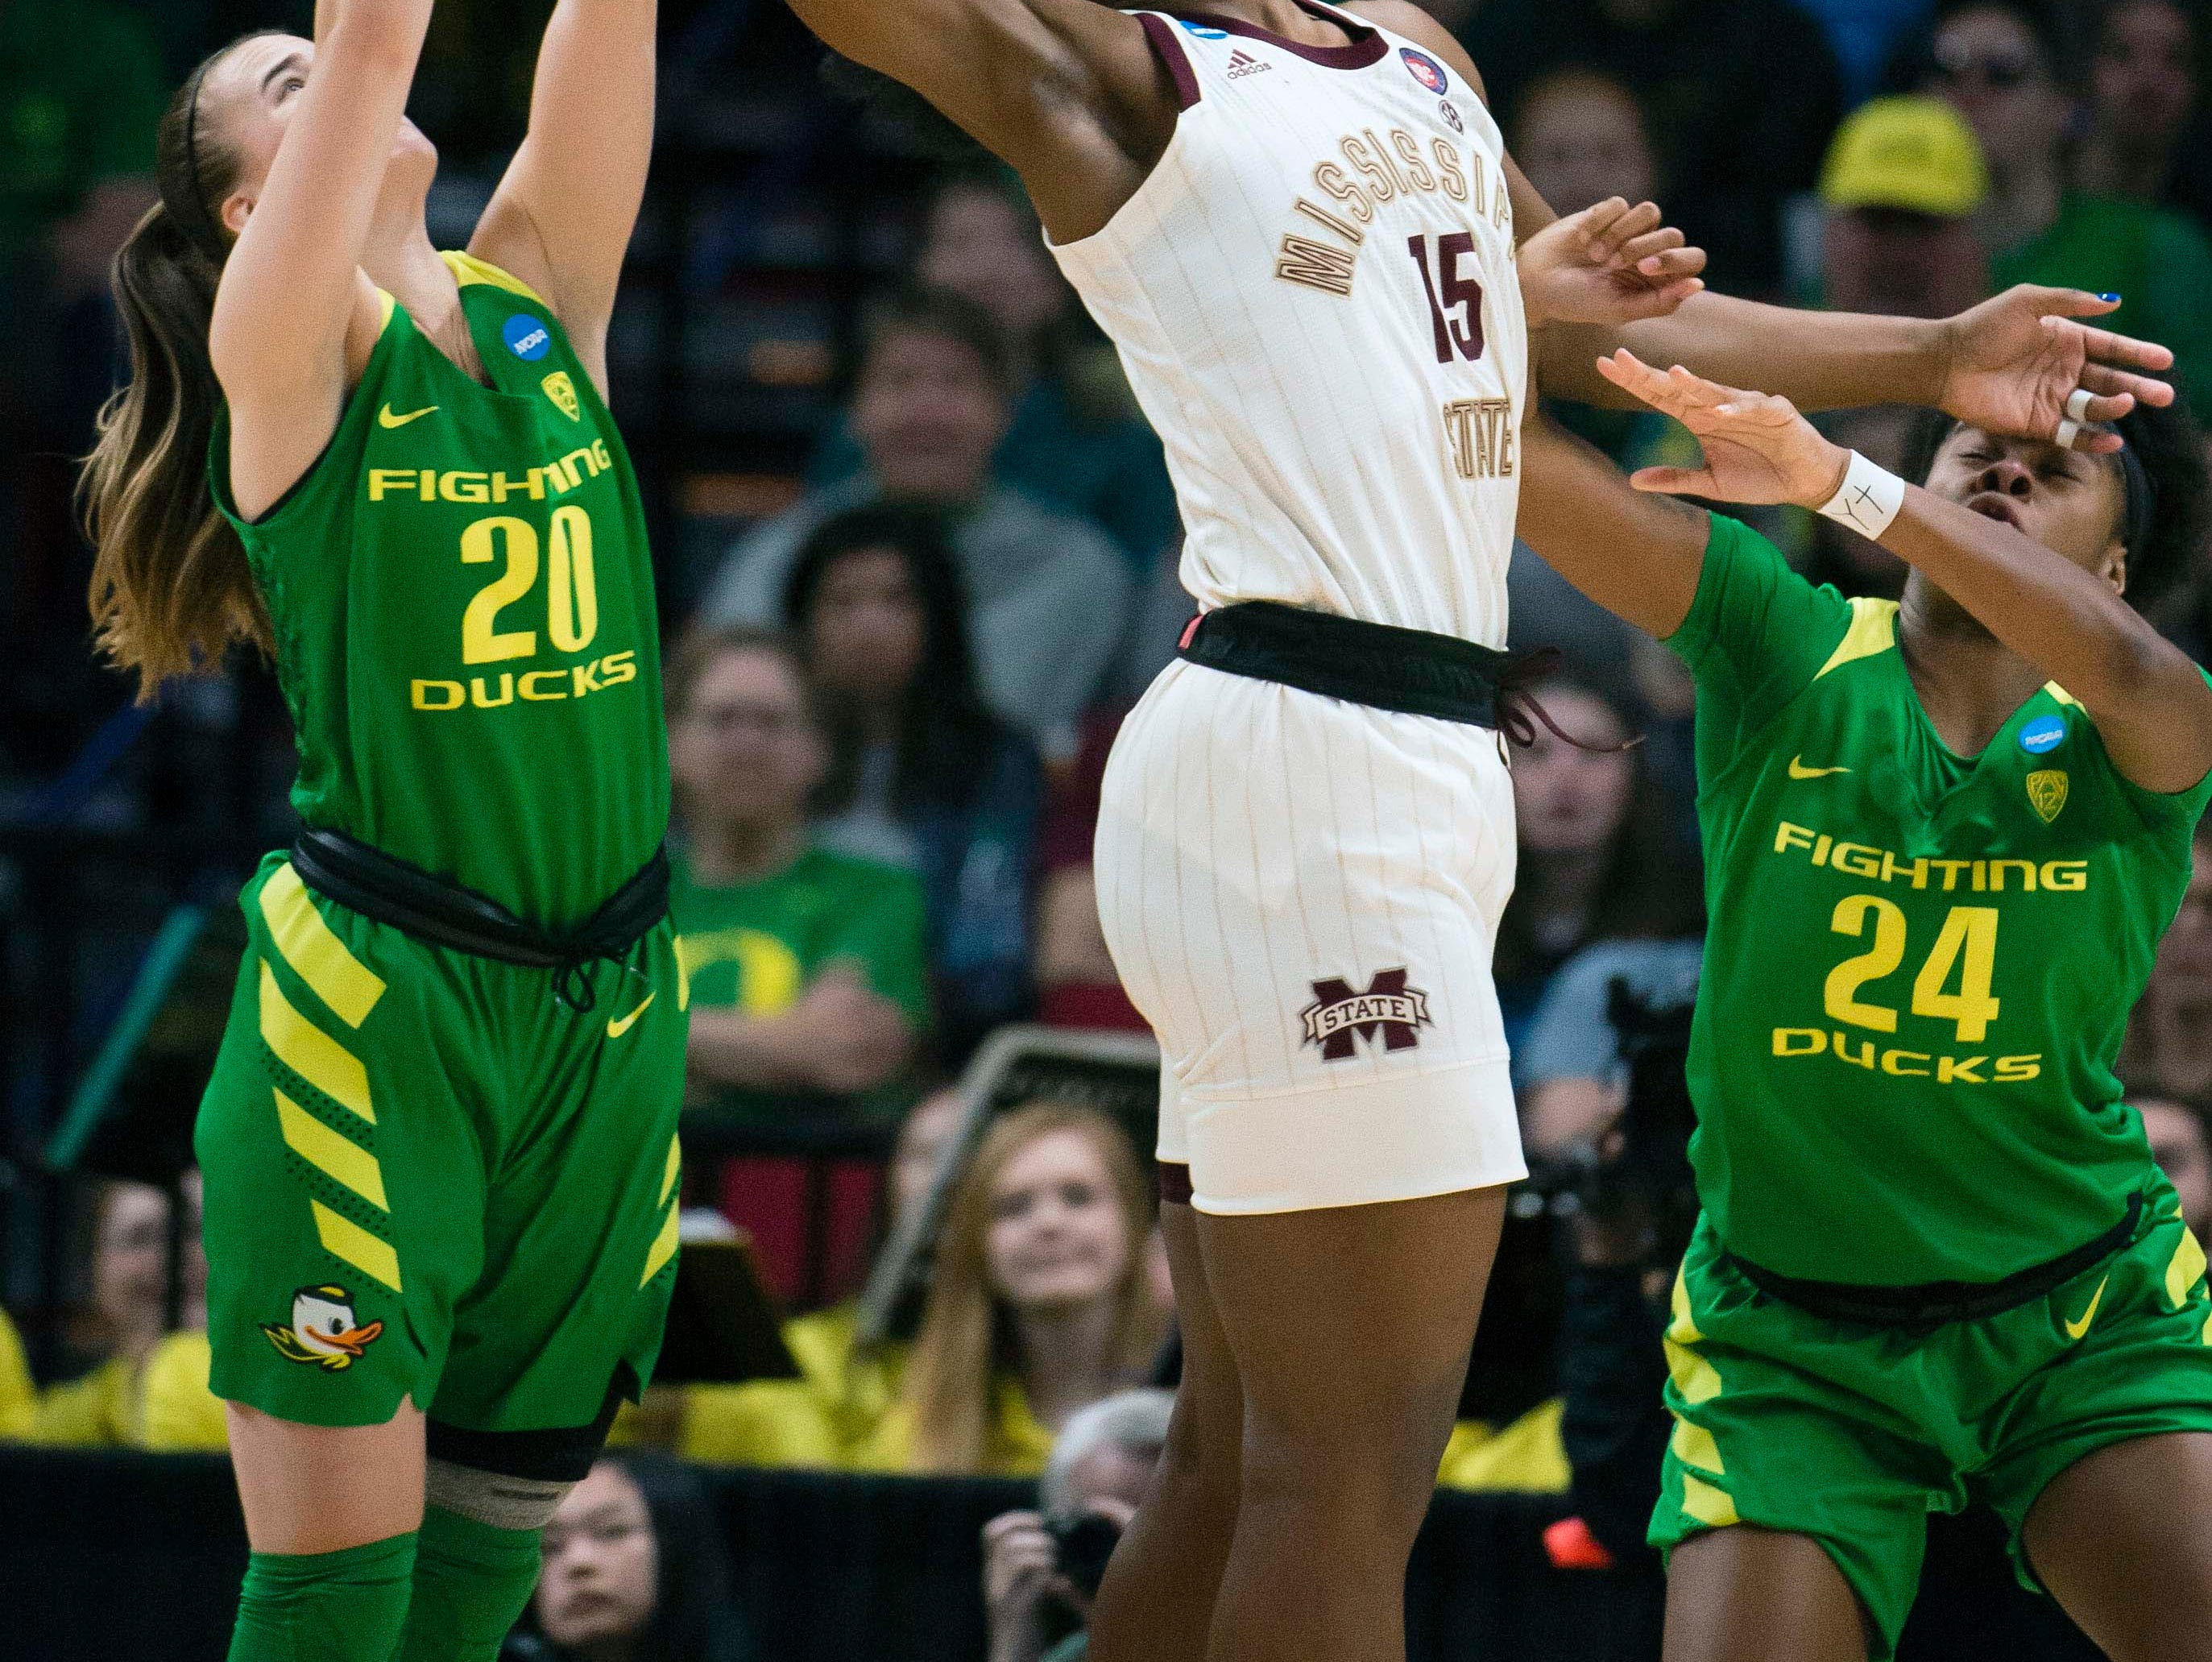 Mississippi State Bulldogs center Teaira McCowan (15) battles for a rebound during the first half against Oregon Ducks guard Sabrina Ionescu (20) in the championship game of the Portland regional in the women's 2019 NCAA Tournament at Moda Center.